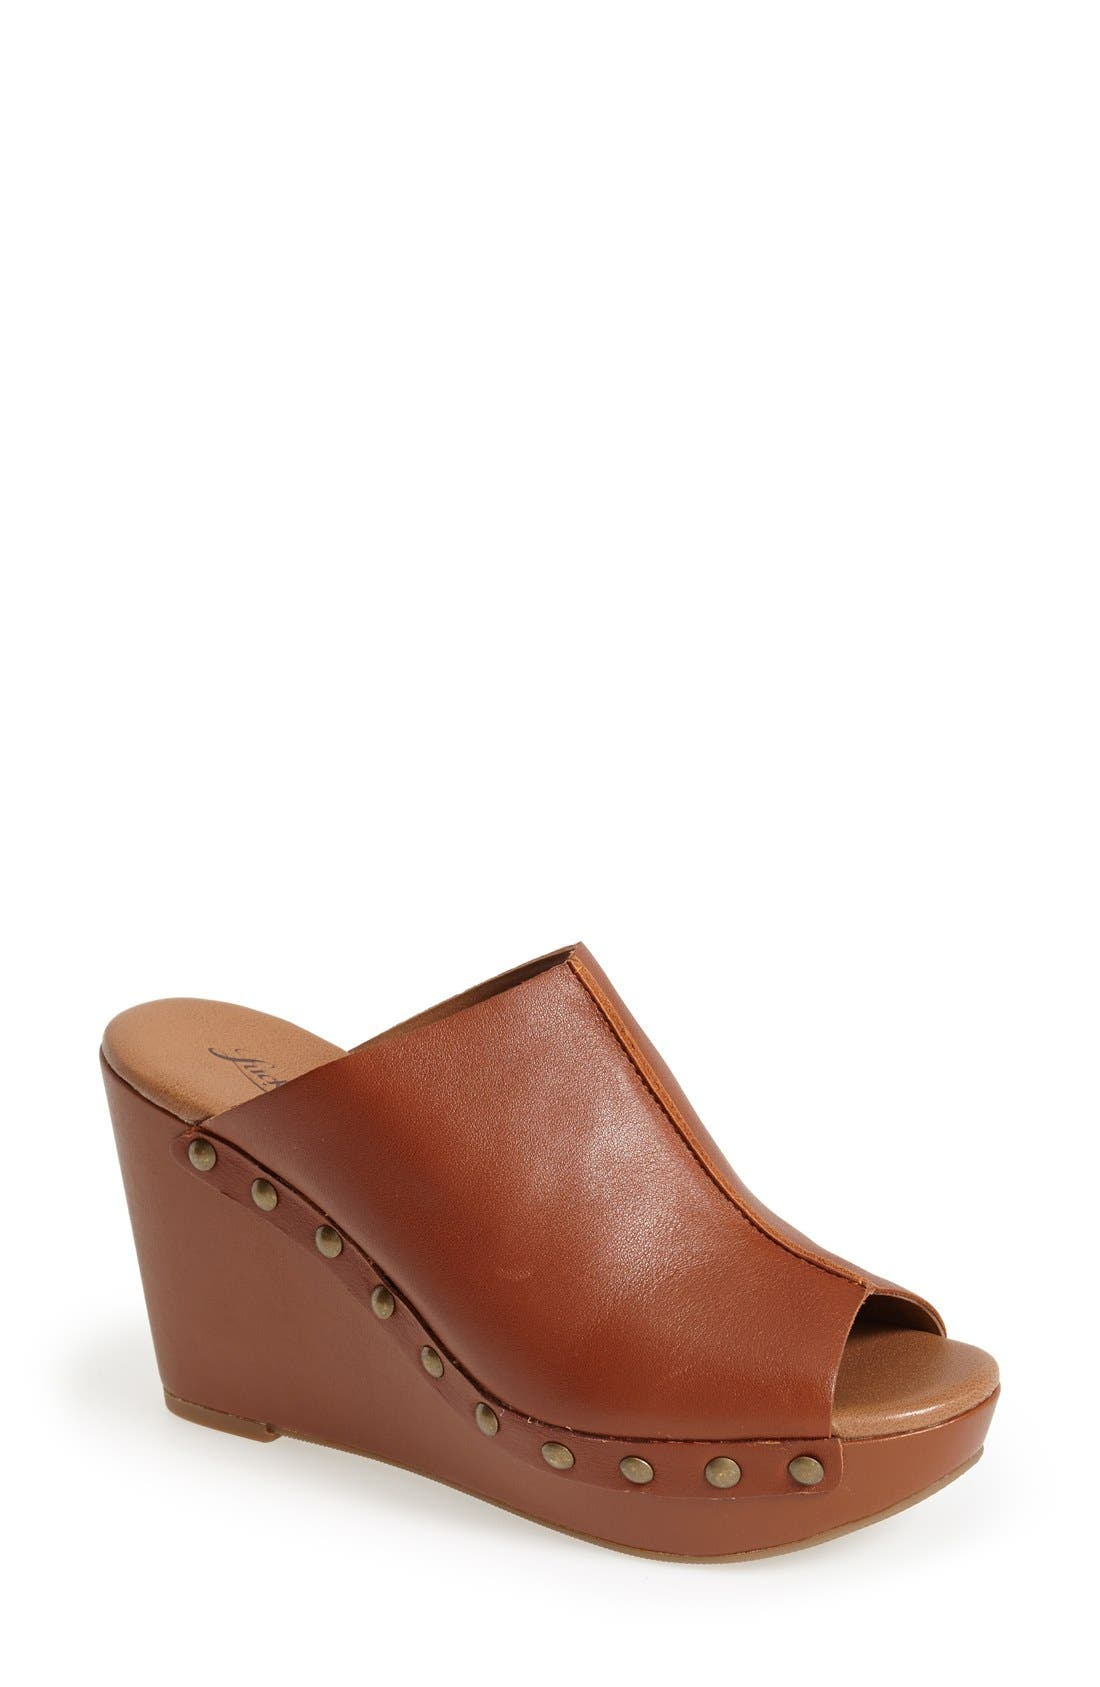 Main Image - Lucky Brand 'Lucky Malayah' Leather Wedge Sandal (Women)